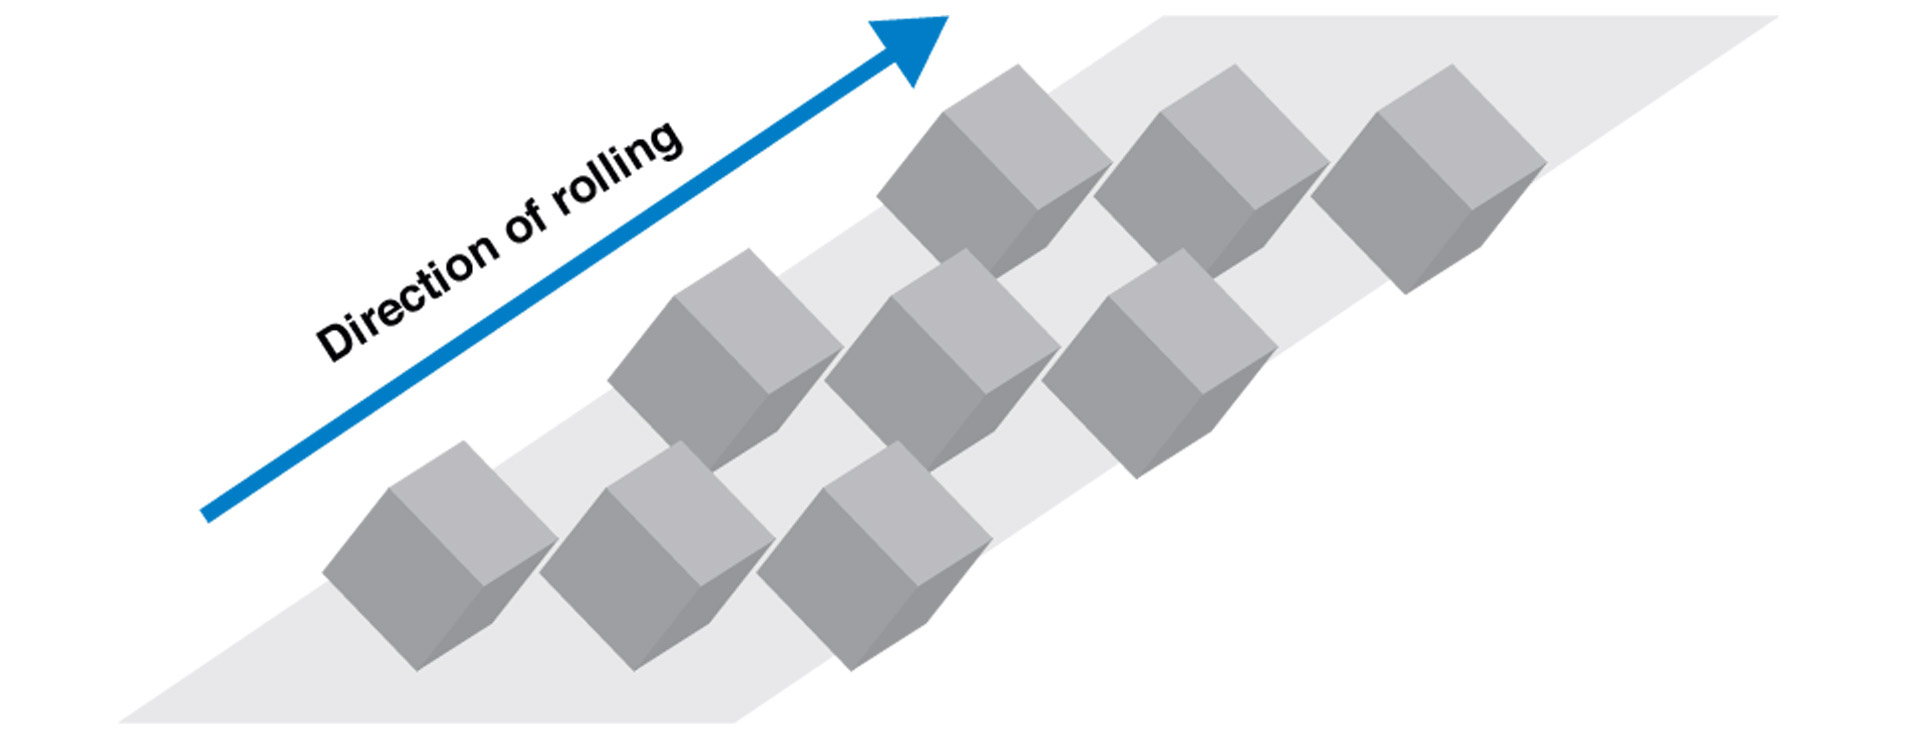 Perfect Goss orientation of the grains in the direction of rolling